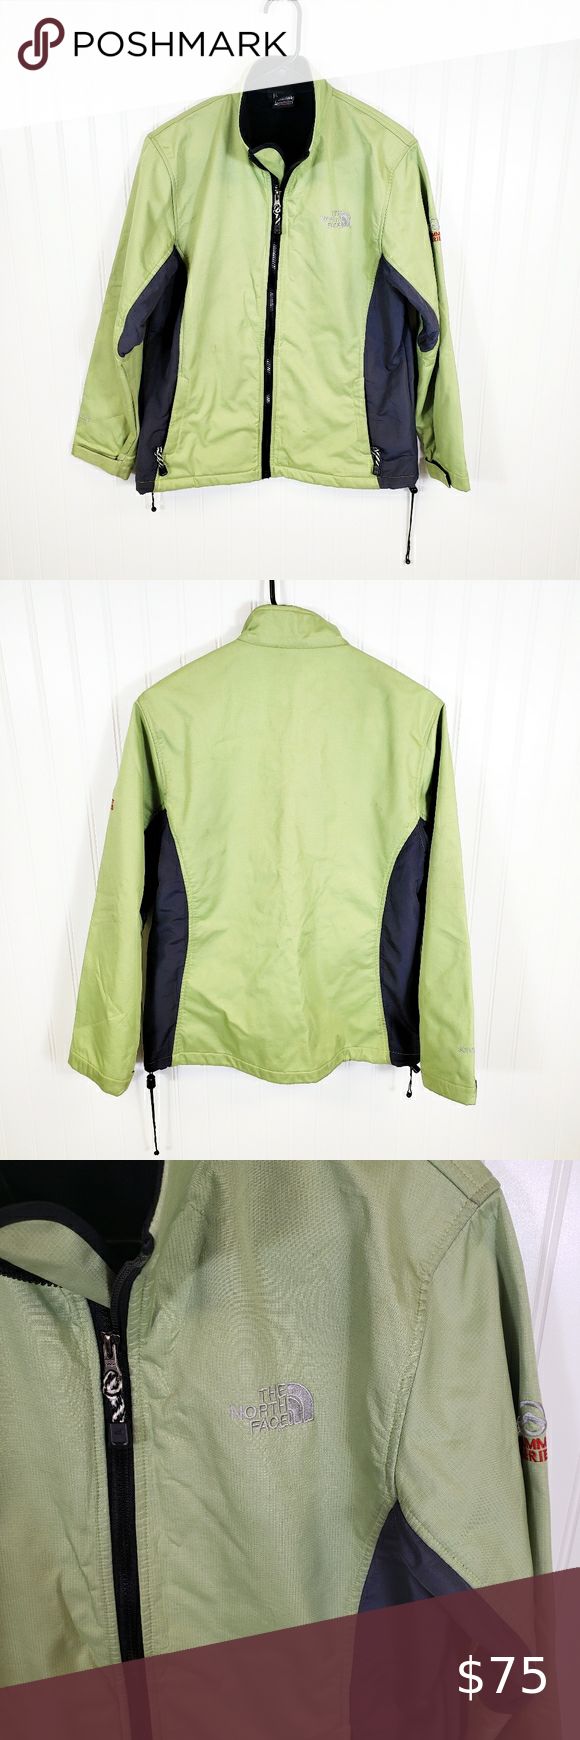 The North Face Summit Serries Jacket Excellent Condition Lime Green And Gray Size Xl Bundle With Other Items For A Dee In 2020 Jackets Clothes Design Jackets For Women [ 1740 x 580 Pixel ]